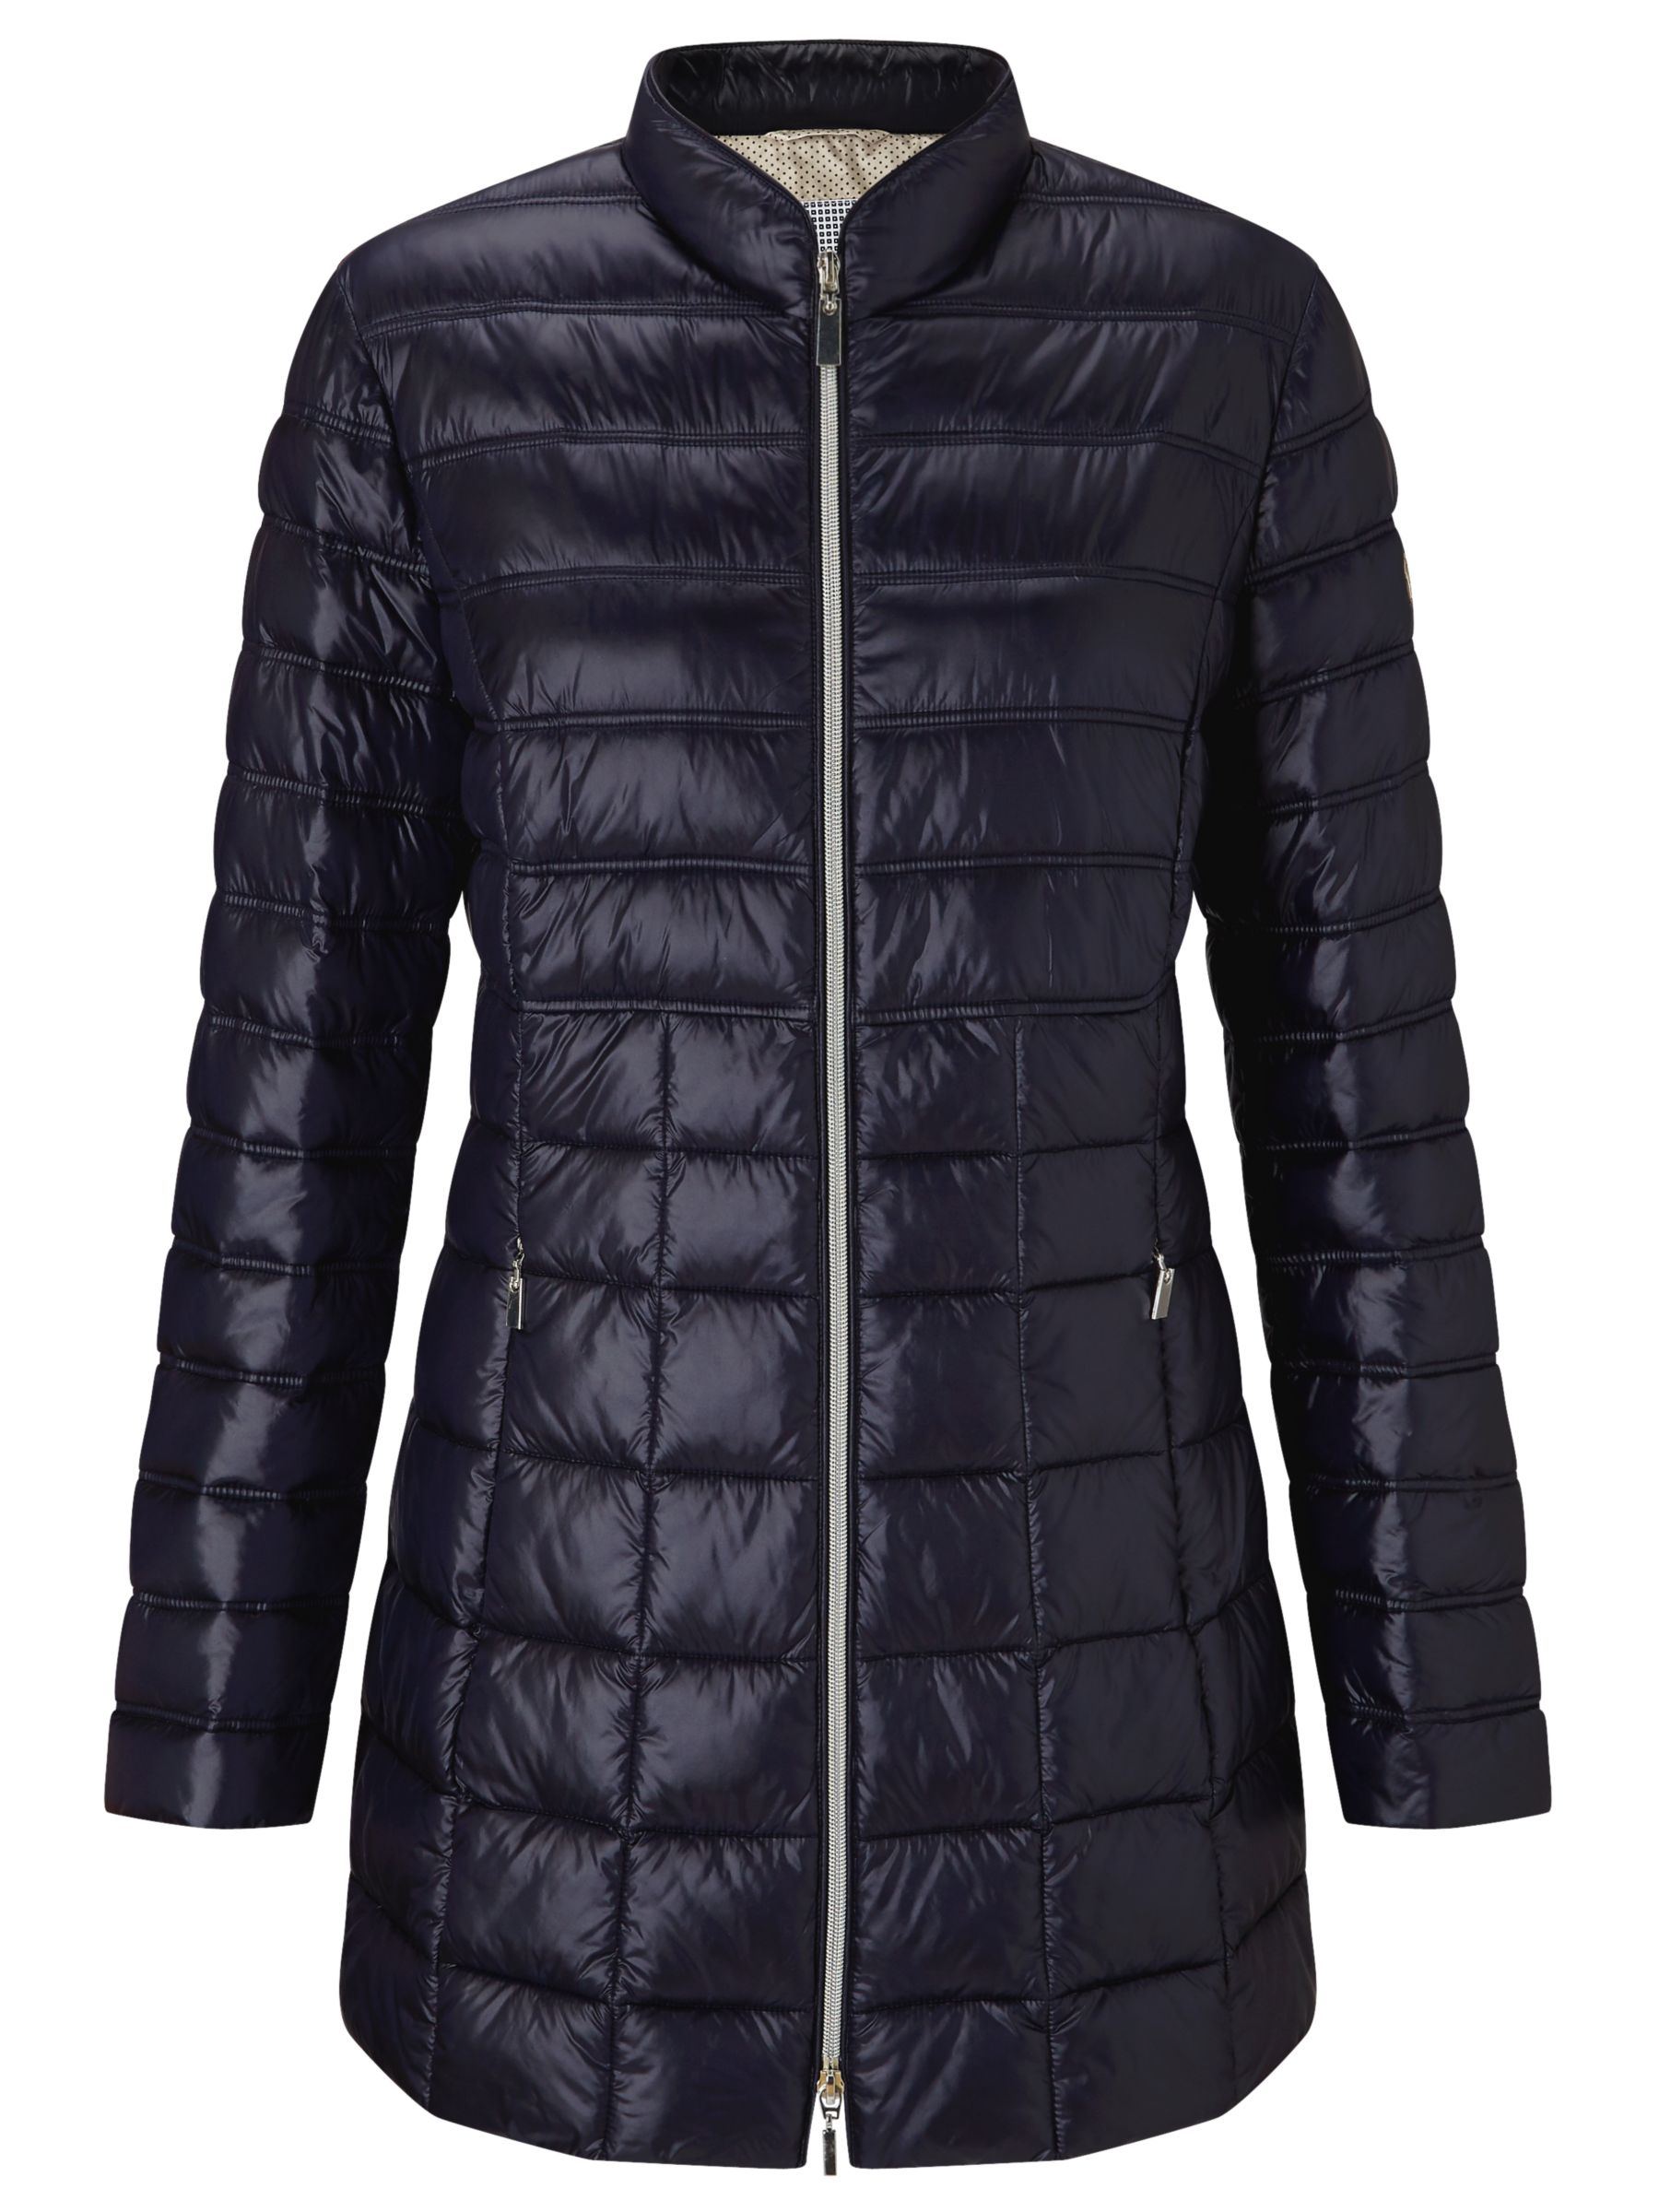 Gerry Weber Gerry Weber Quilted Padded Jacket, Navy